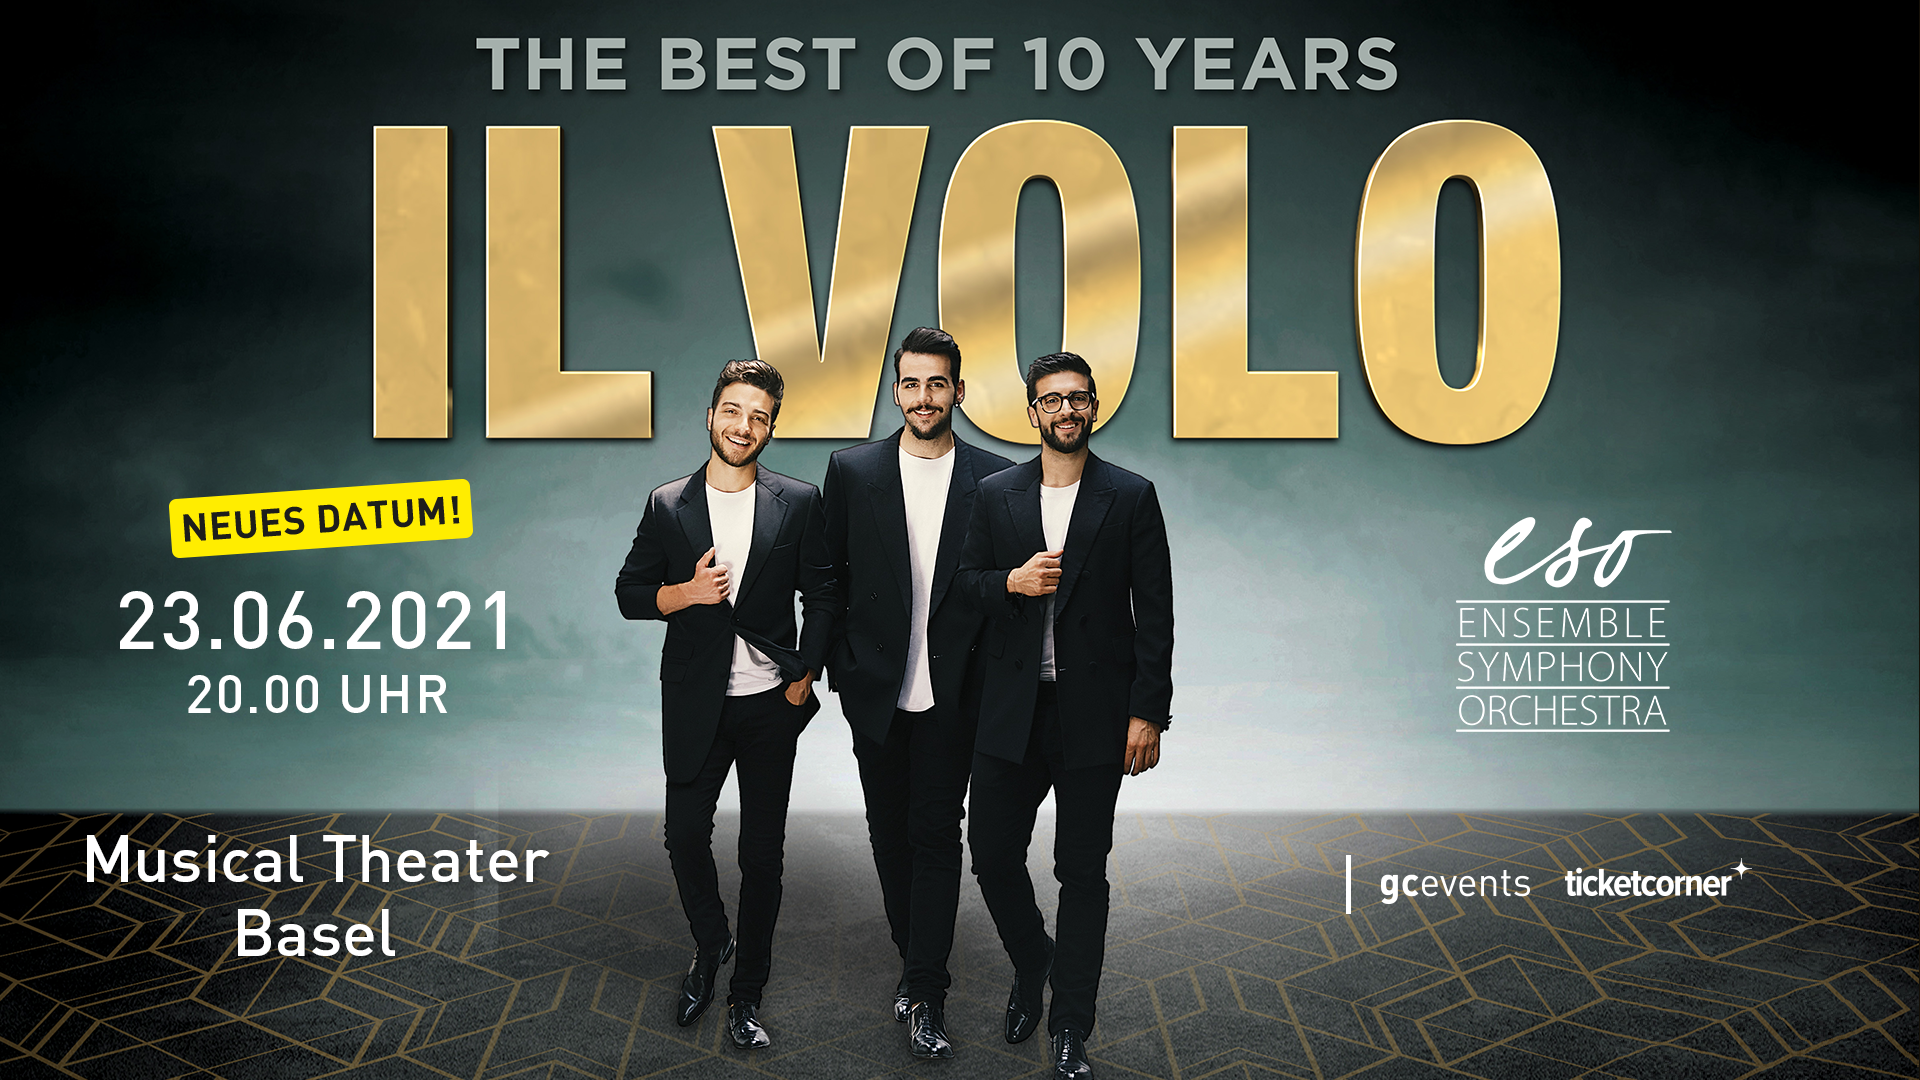 Il Volo. The best of 10 years.